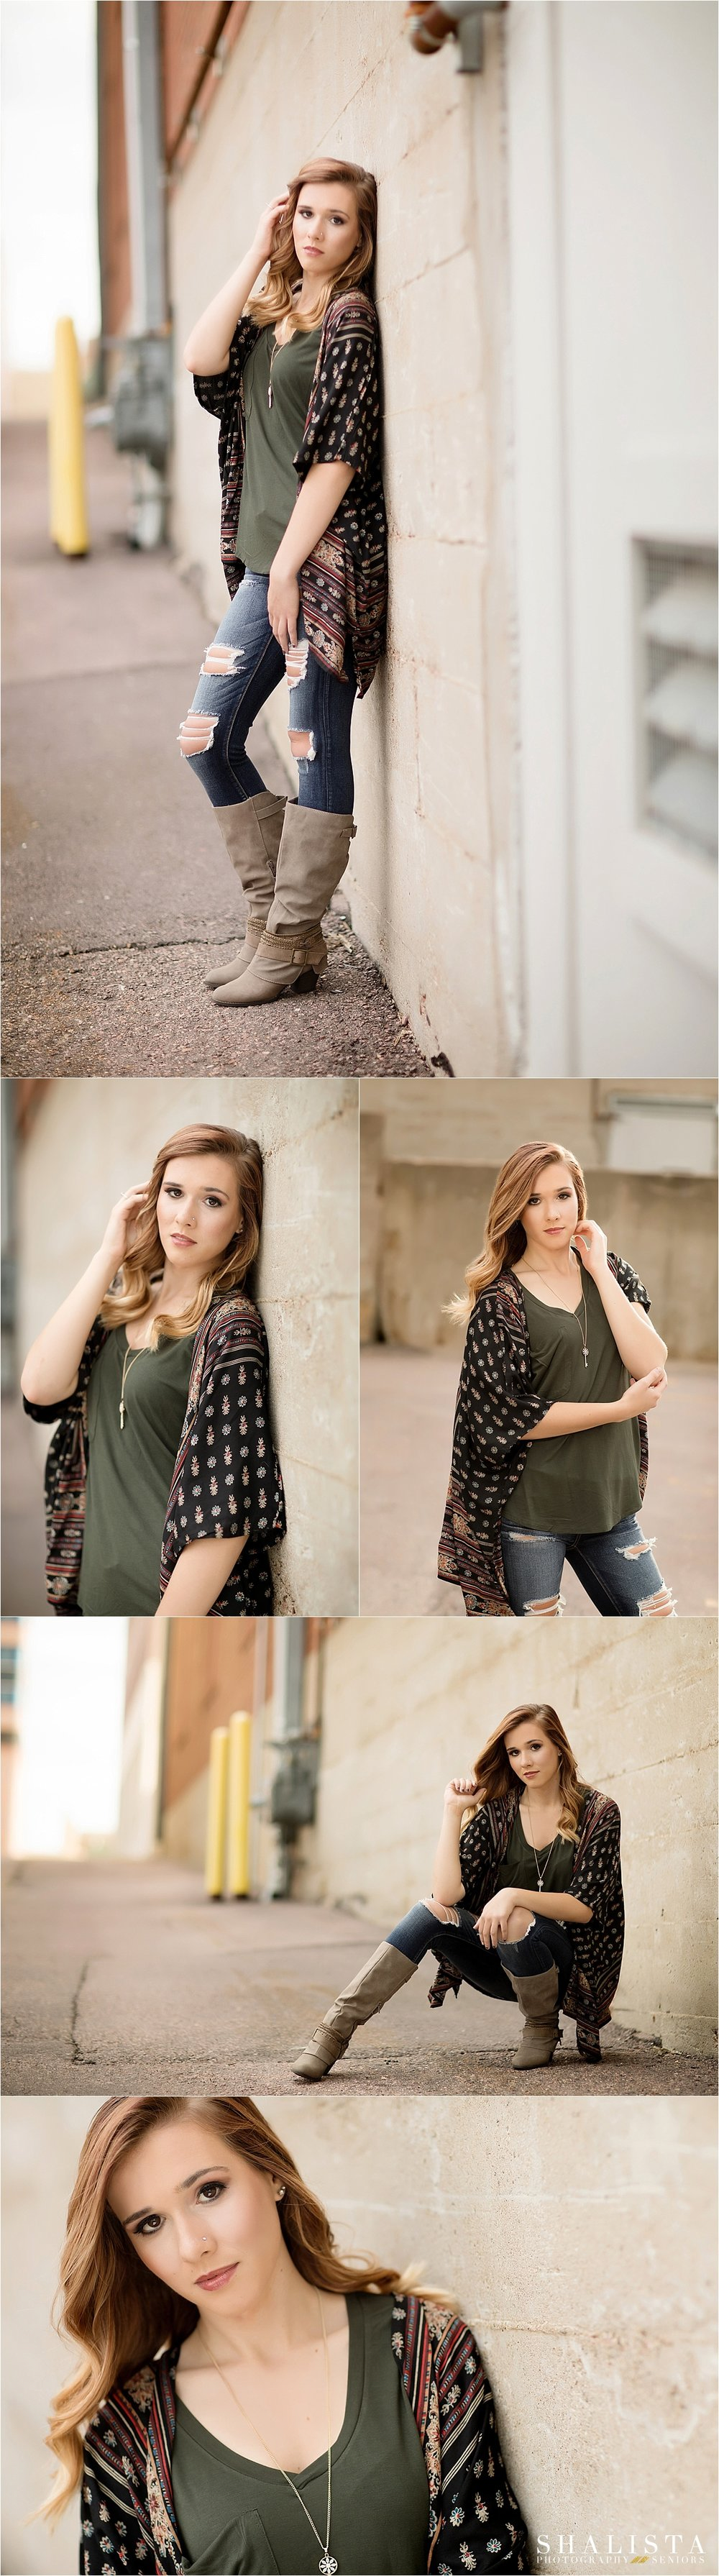 Sioux Falls Senior Portraits